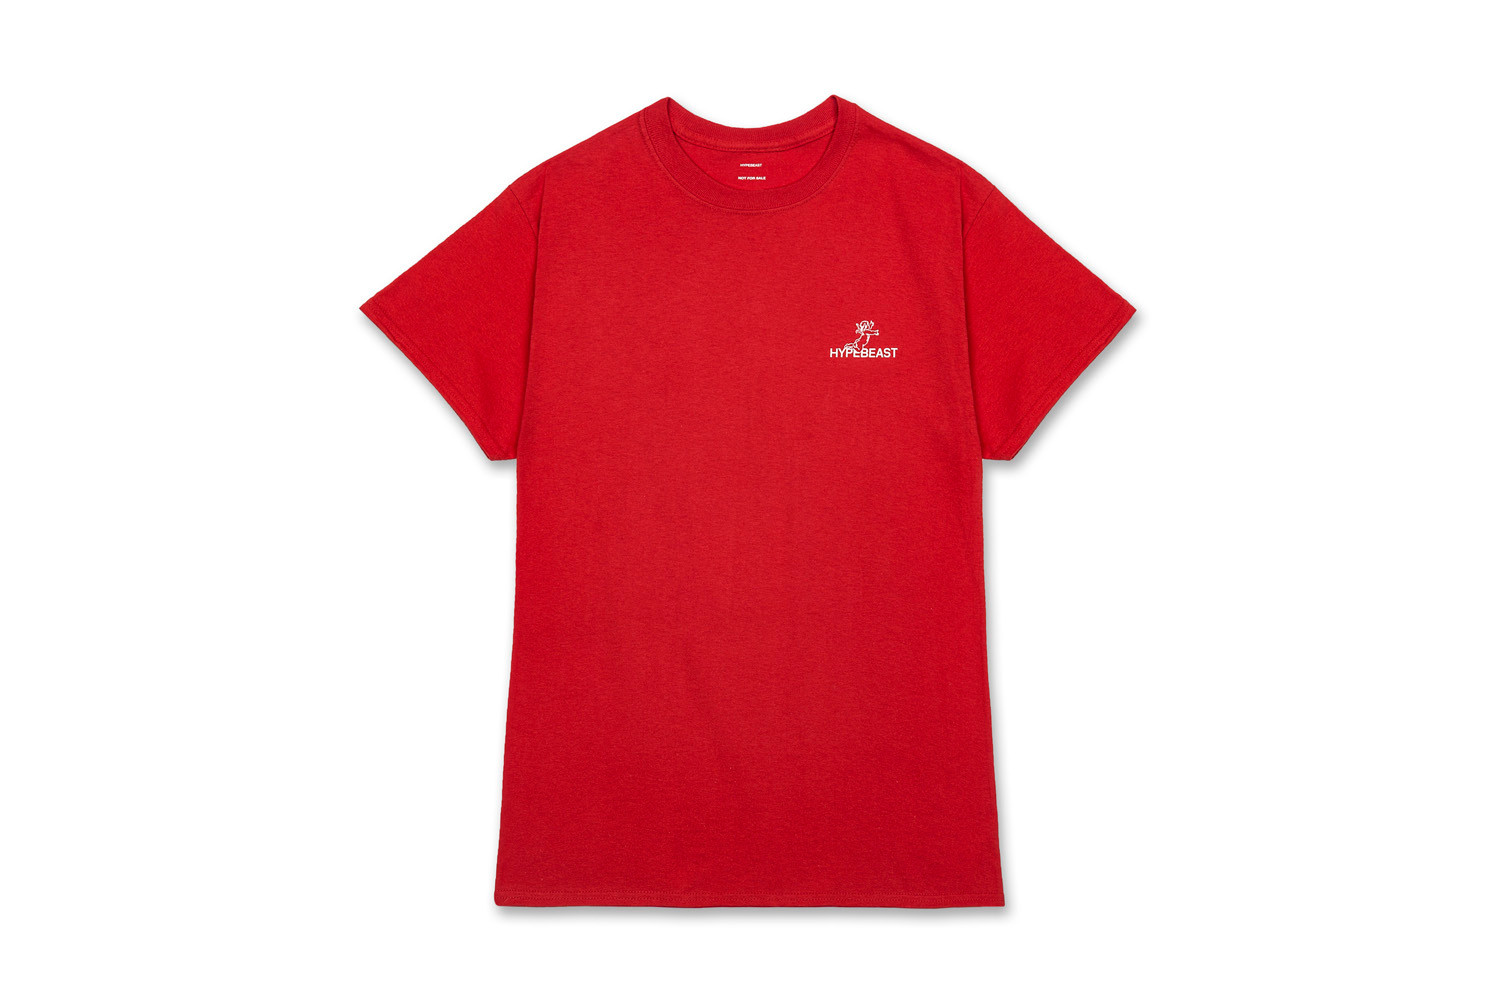 HYPEBEAST Unveils The 'Holiday' Exclusive T-Shirt